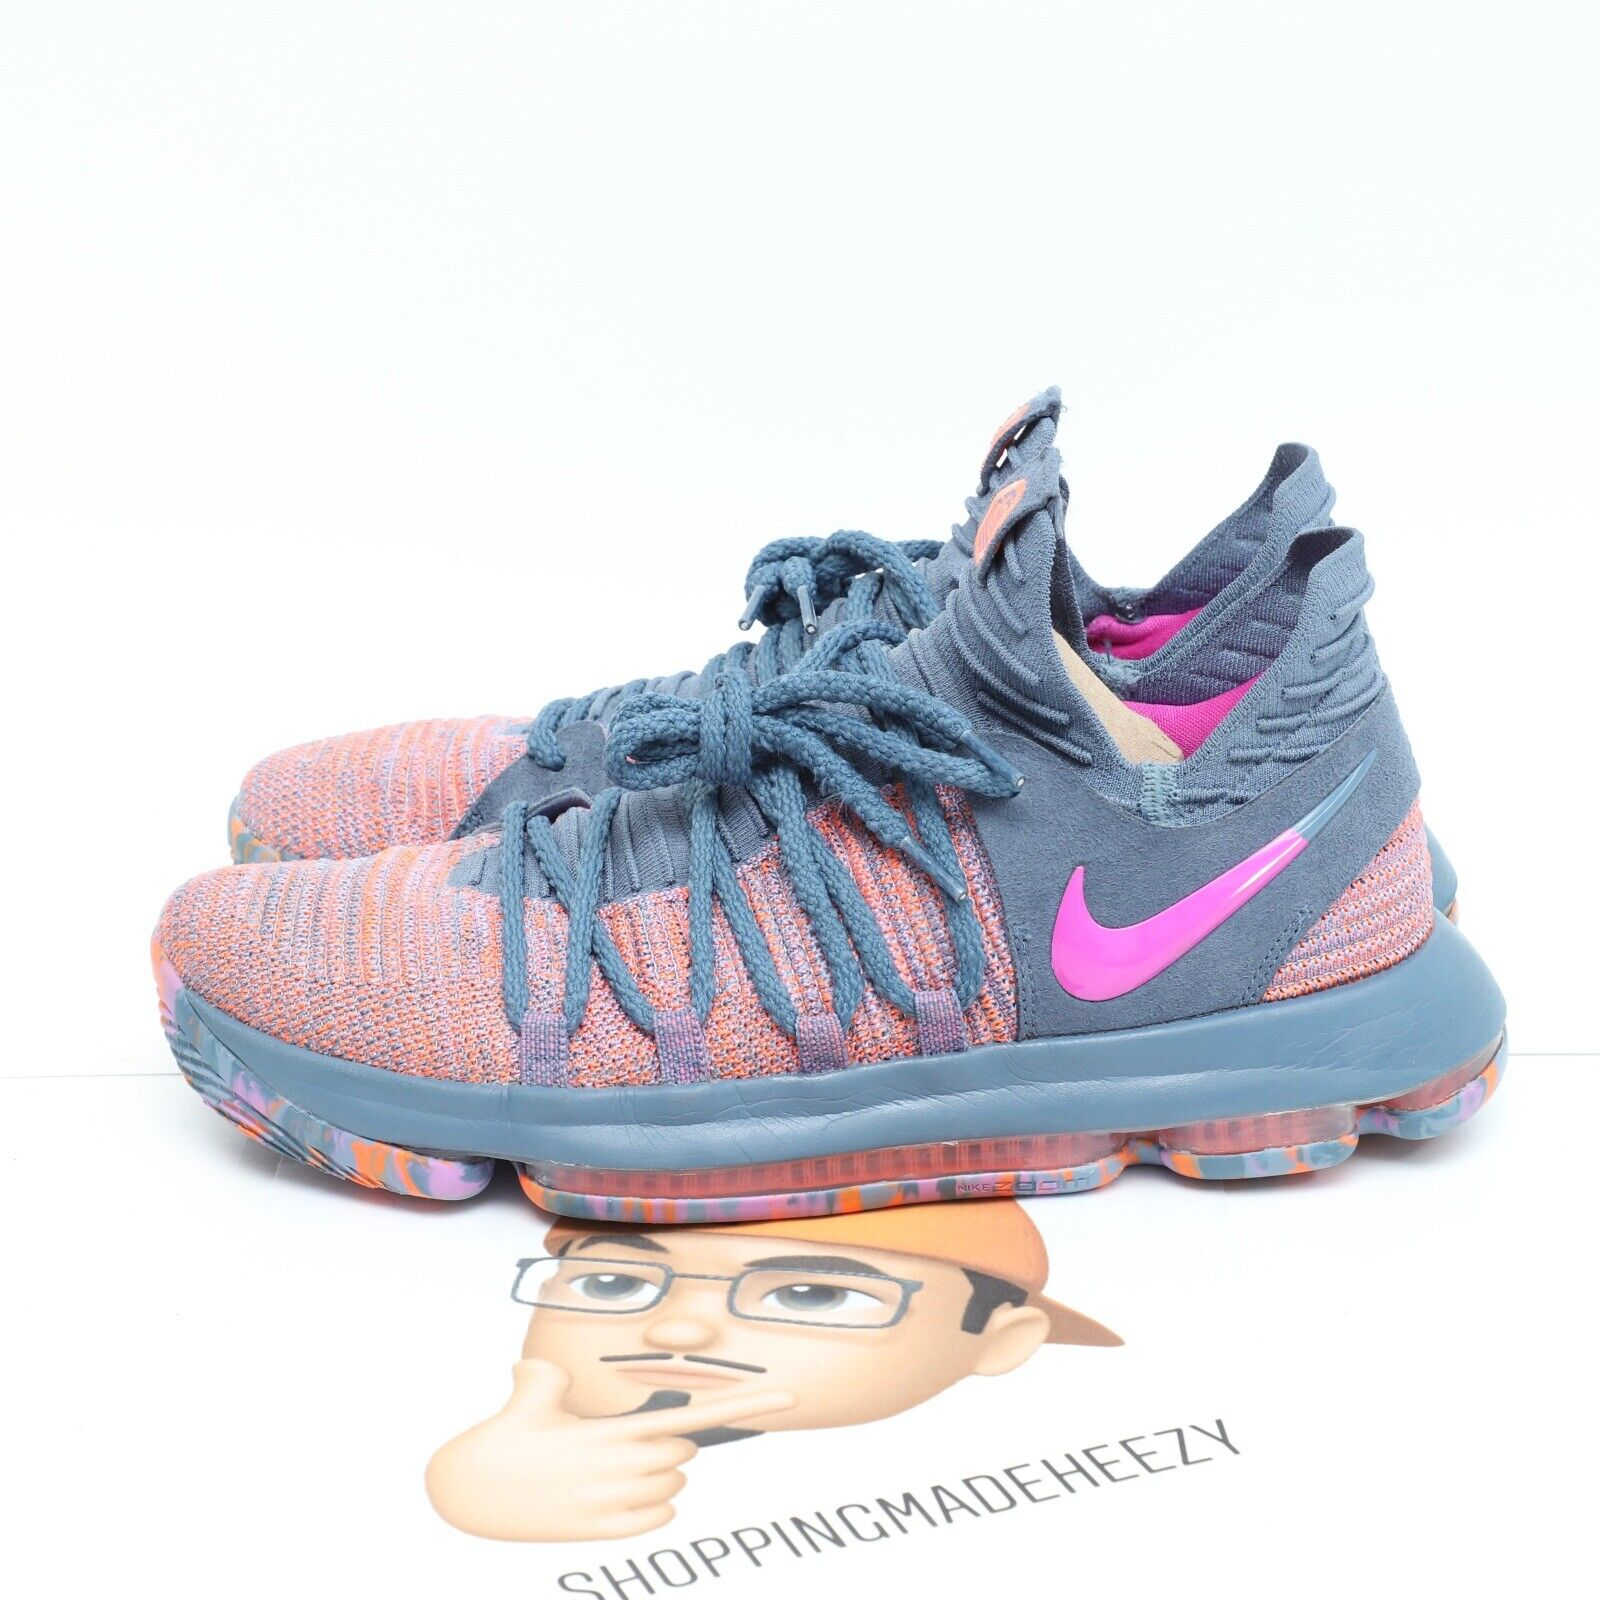 Nike Zoom Kd10 Limited Edition Shoes Sz